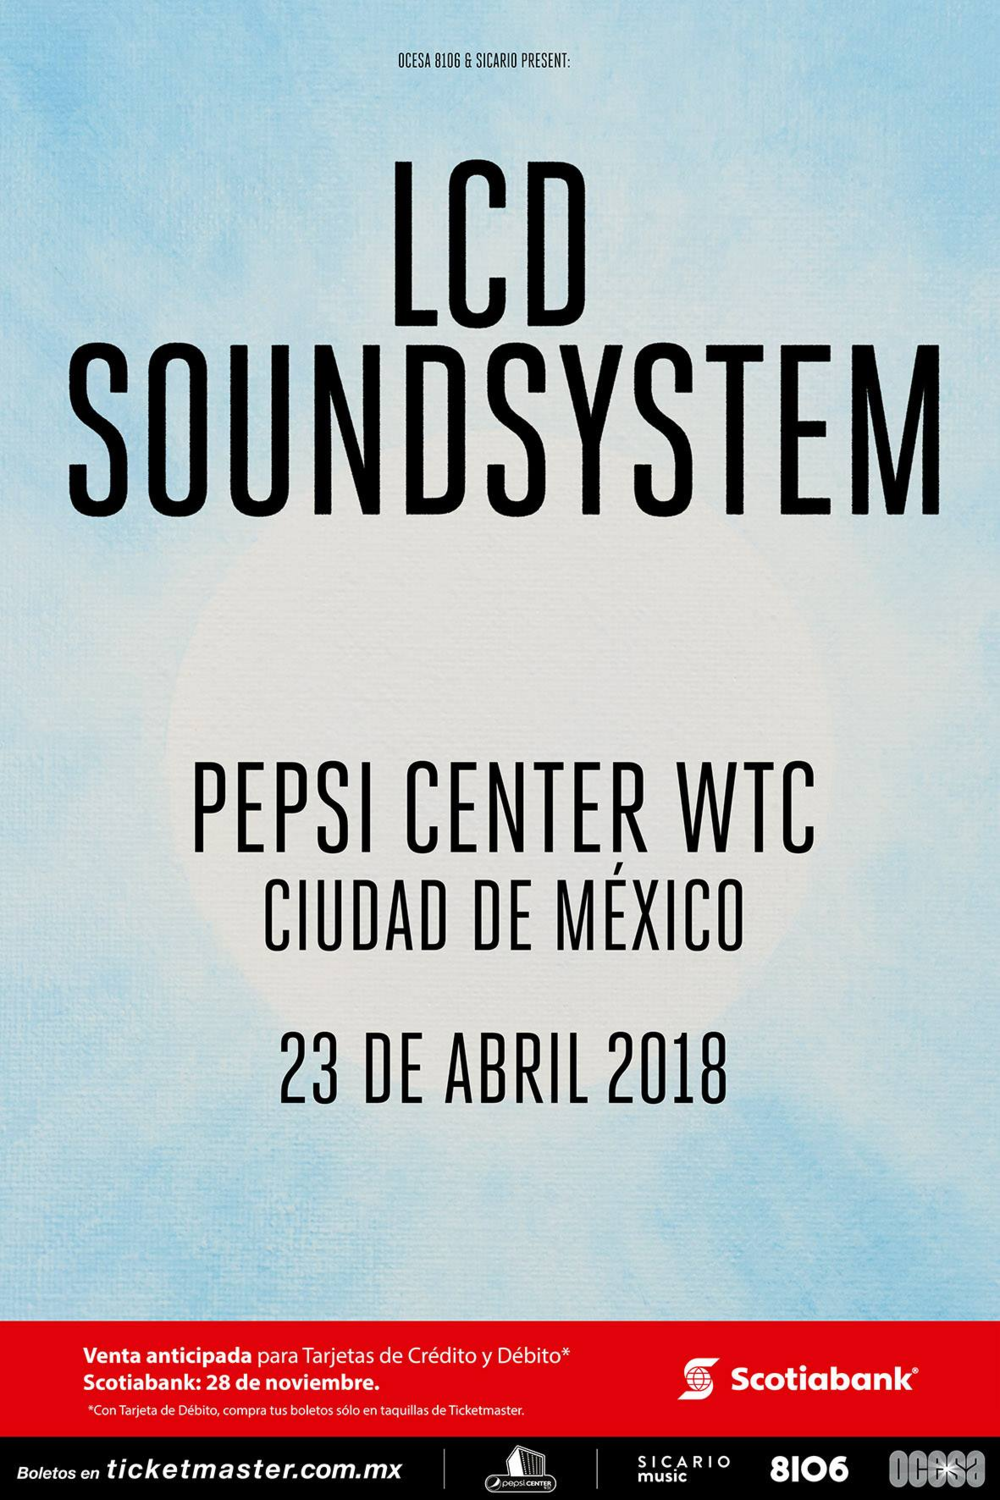 LCD SoundsystemCDMX - Lugar: Pepsi Center WTC.Hora: 8:00 a 11:00 pmBoletos: Ticketmaster.